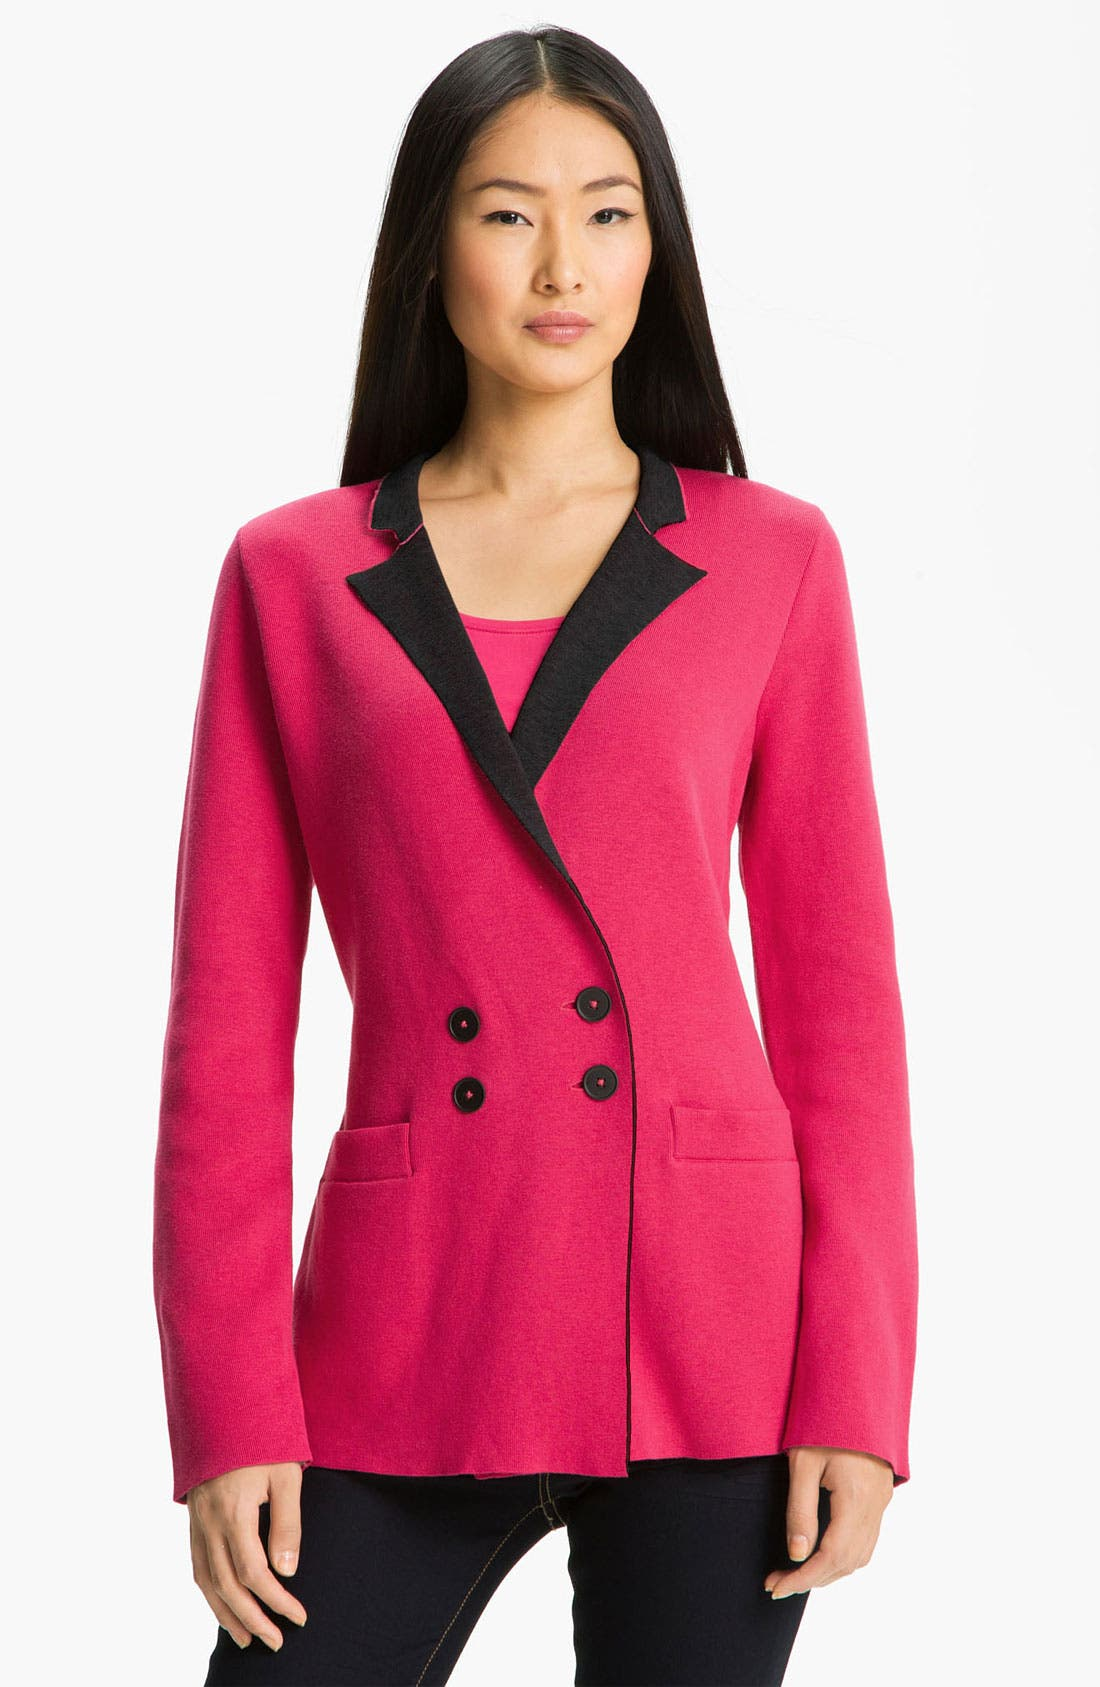 Alternate Image 1 Selected - Nic + Zoe 'Out the Door' Knit Jacket (Petite)